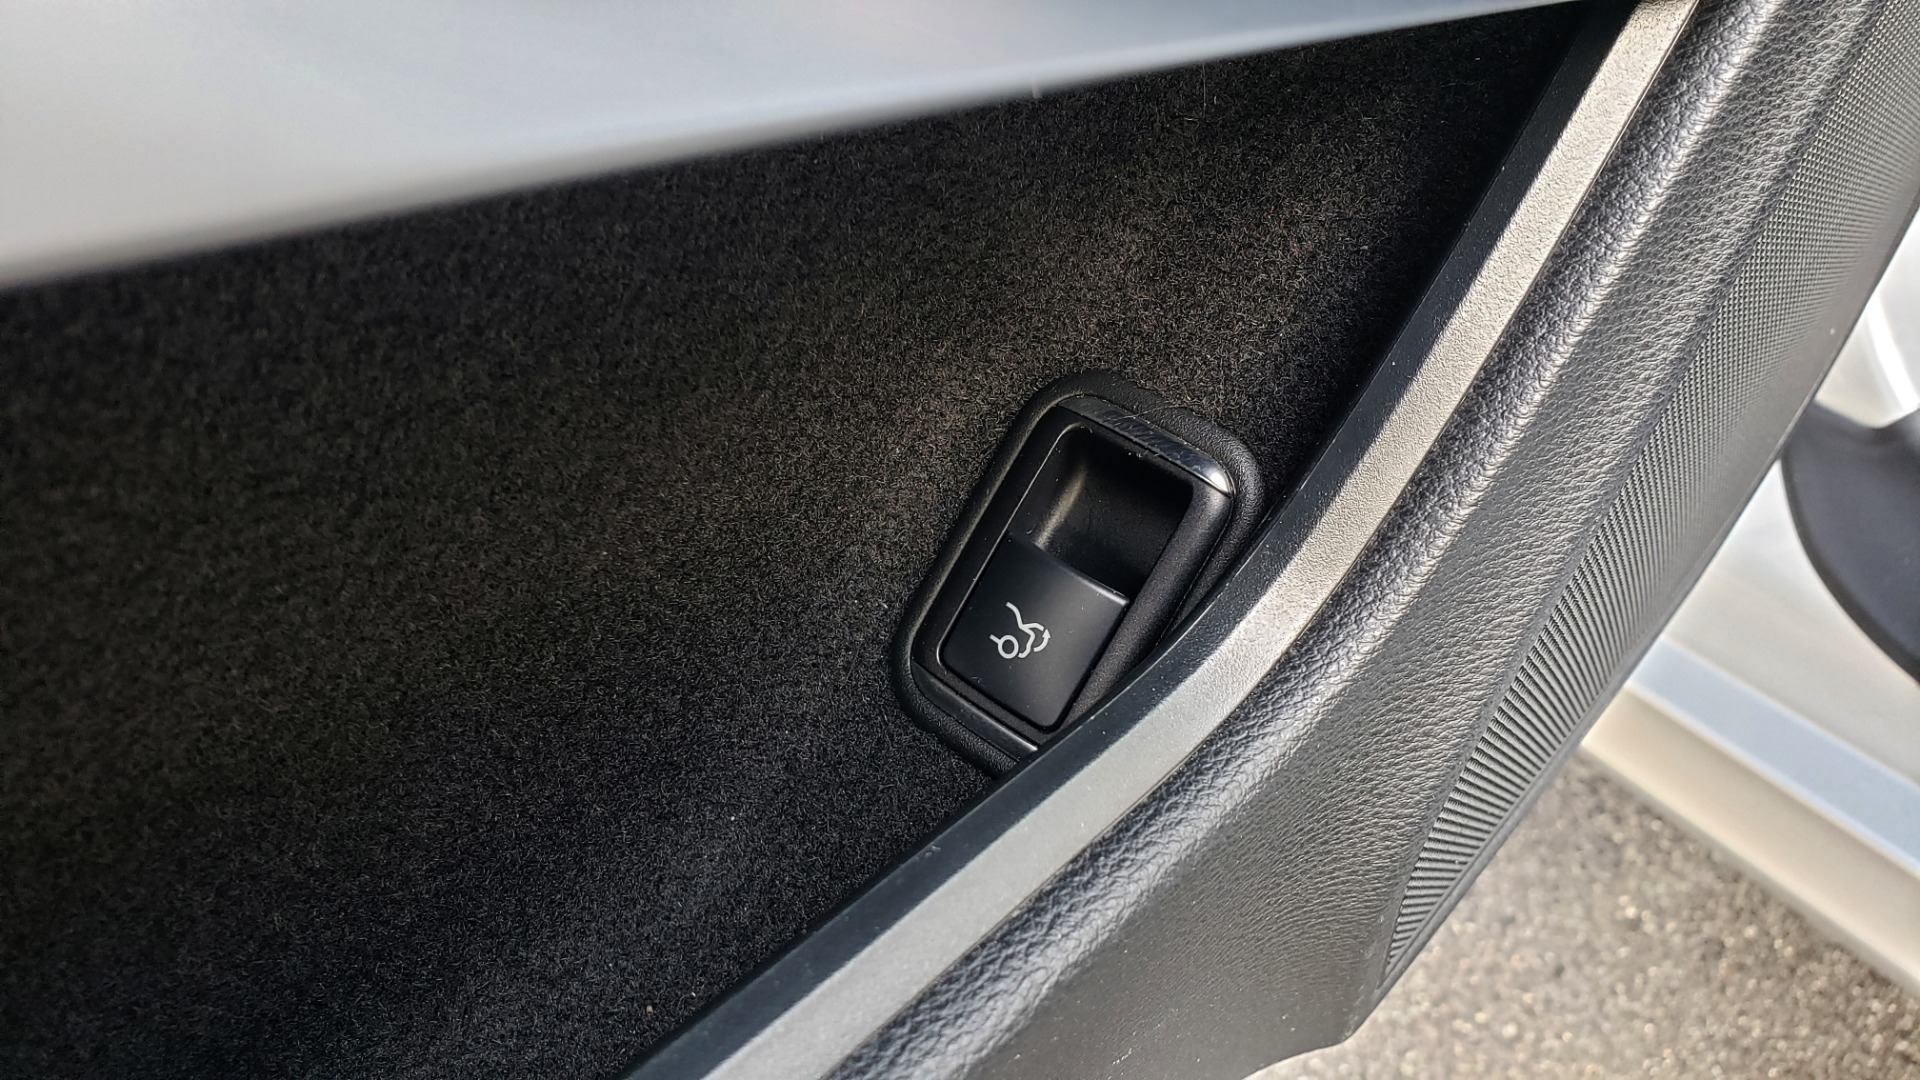 Used 2013 Mercedes-Benz E-CLASS E 350 COUPE PREM / NAV / PANO-ROFF / KEYLESS-GO / REARVIEW for sale Sold at Formula Imports in Charlotte NC 28227 33